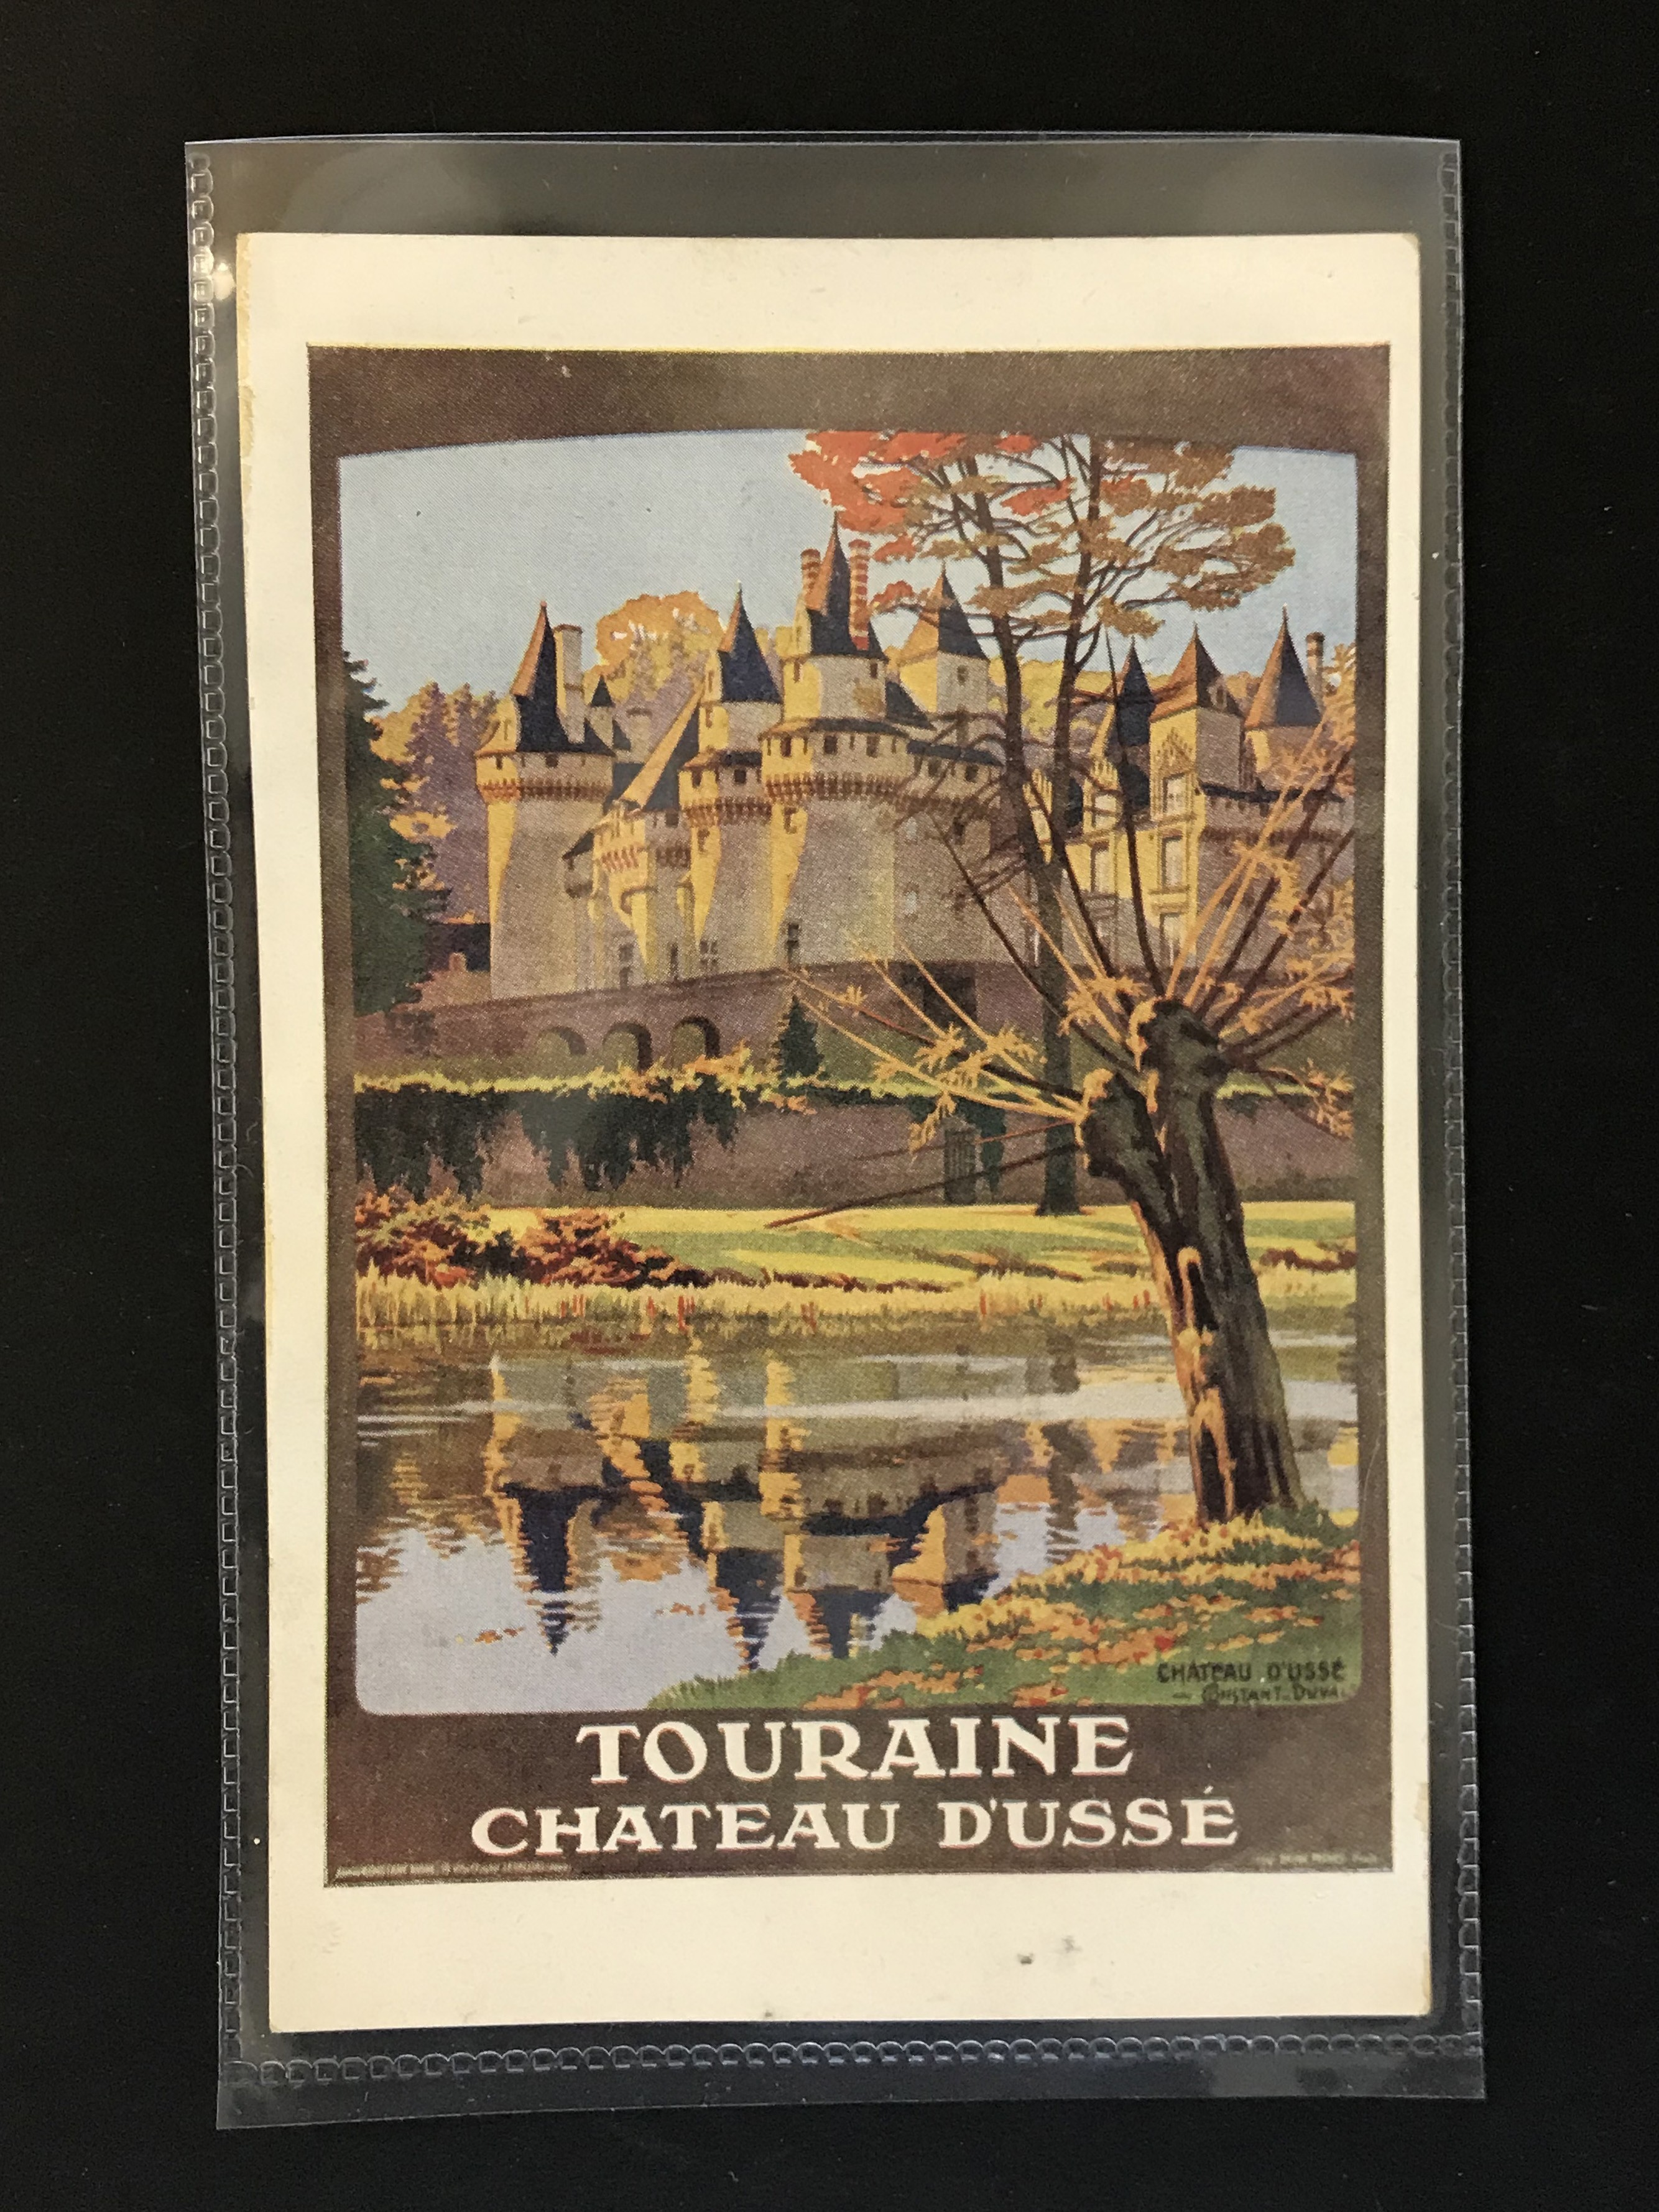 SIX FRENCH OLD POSTCARDS PROMOTING TOURIST DESTINATIONS - Image 3 of 8